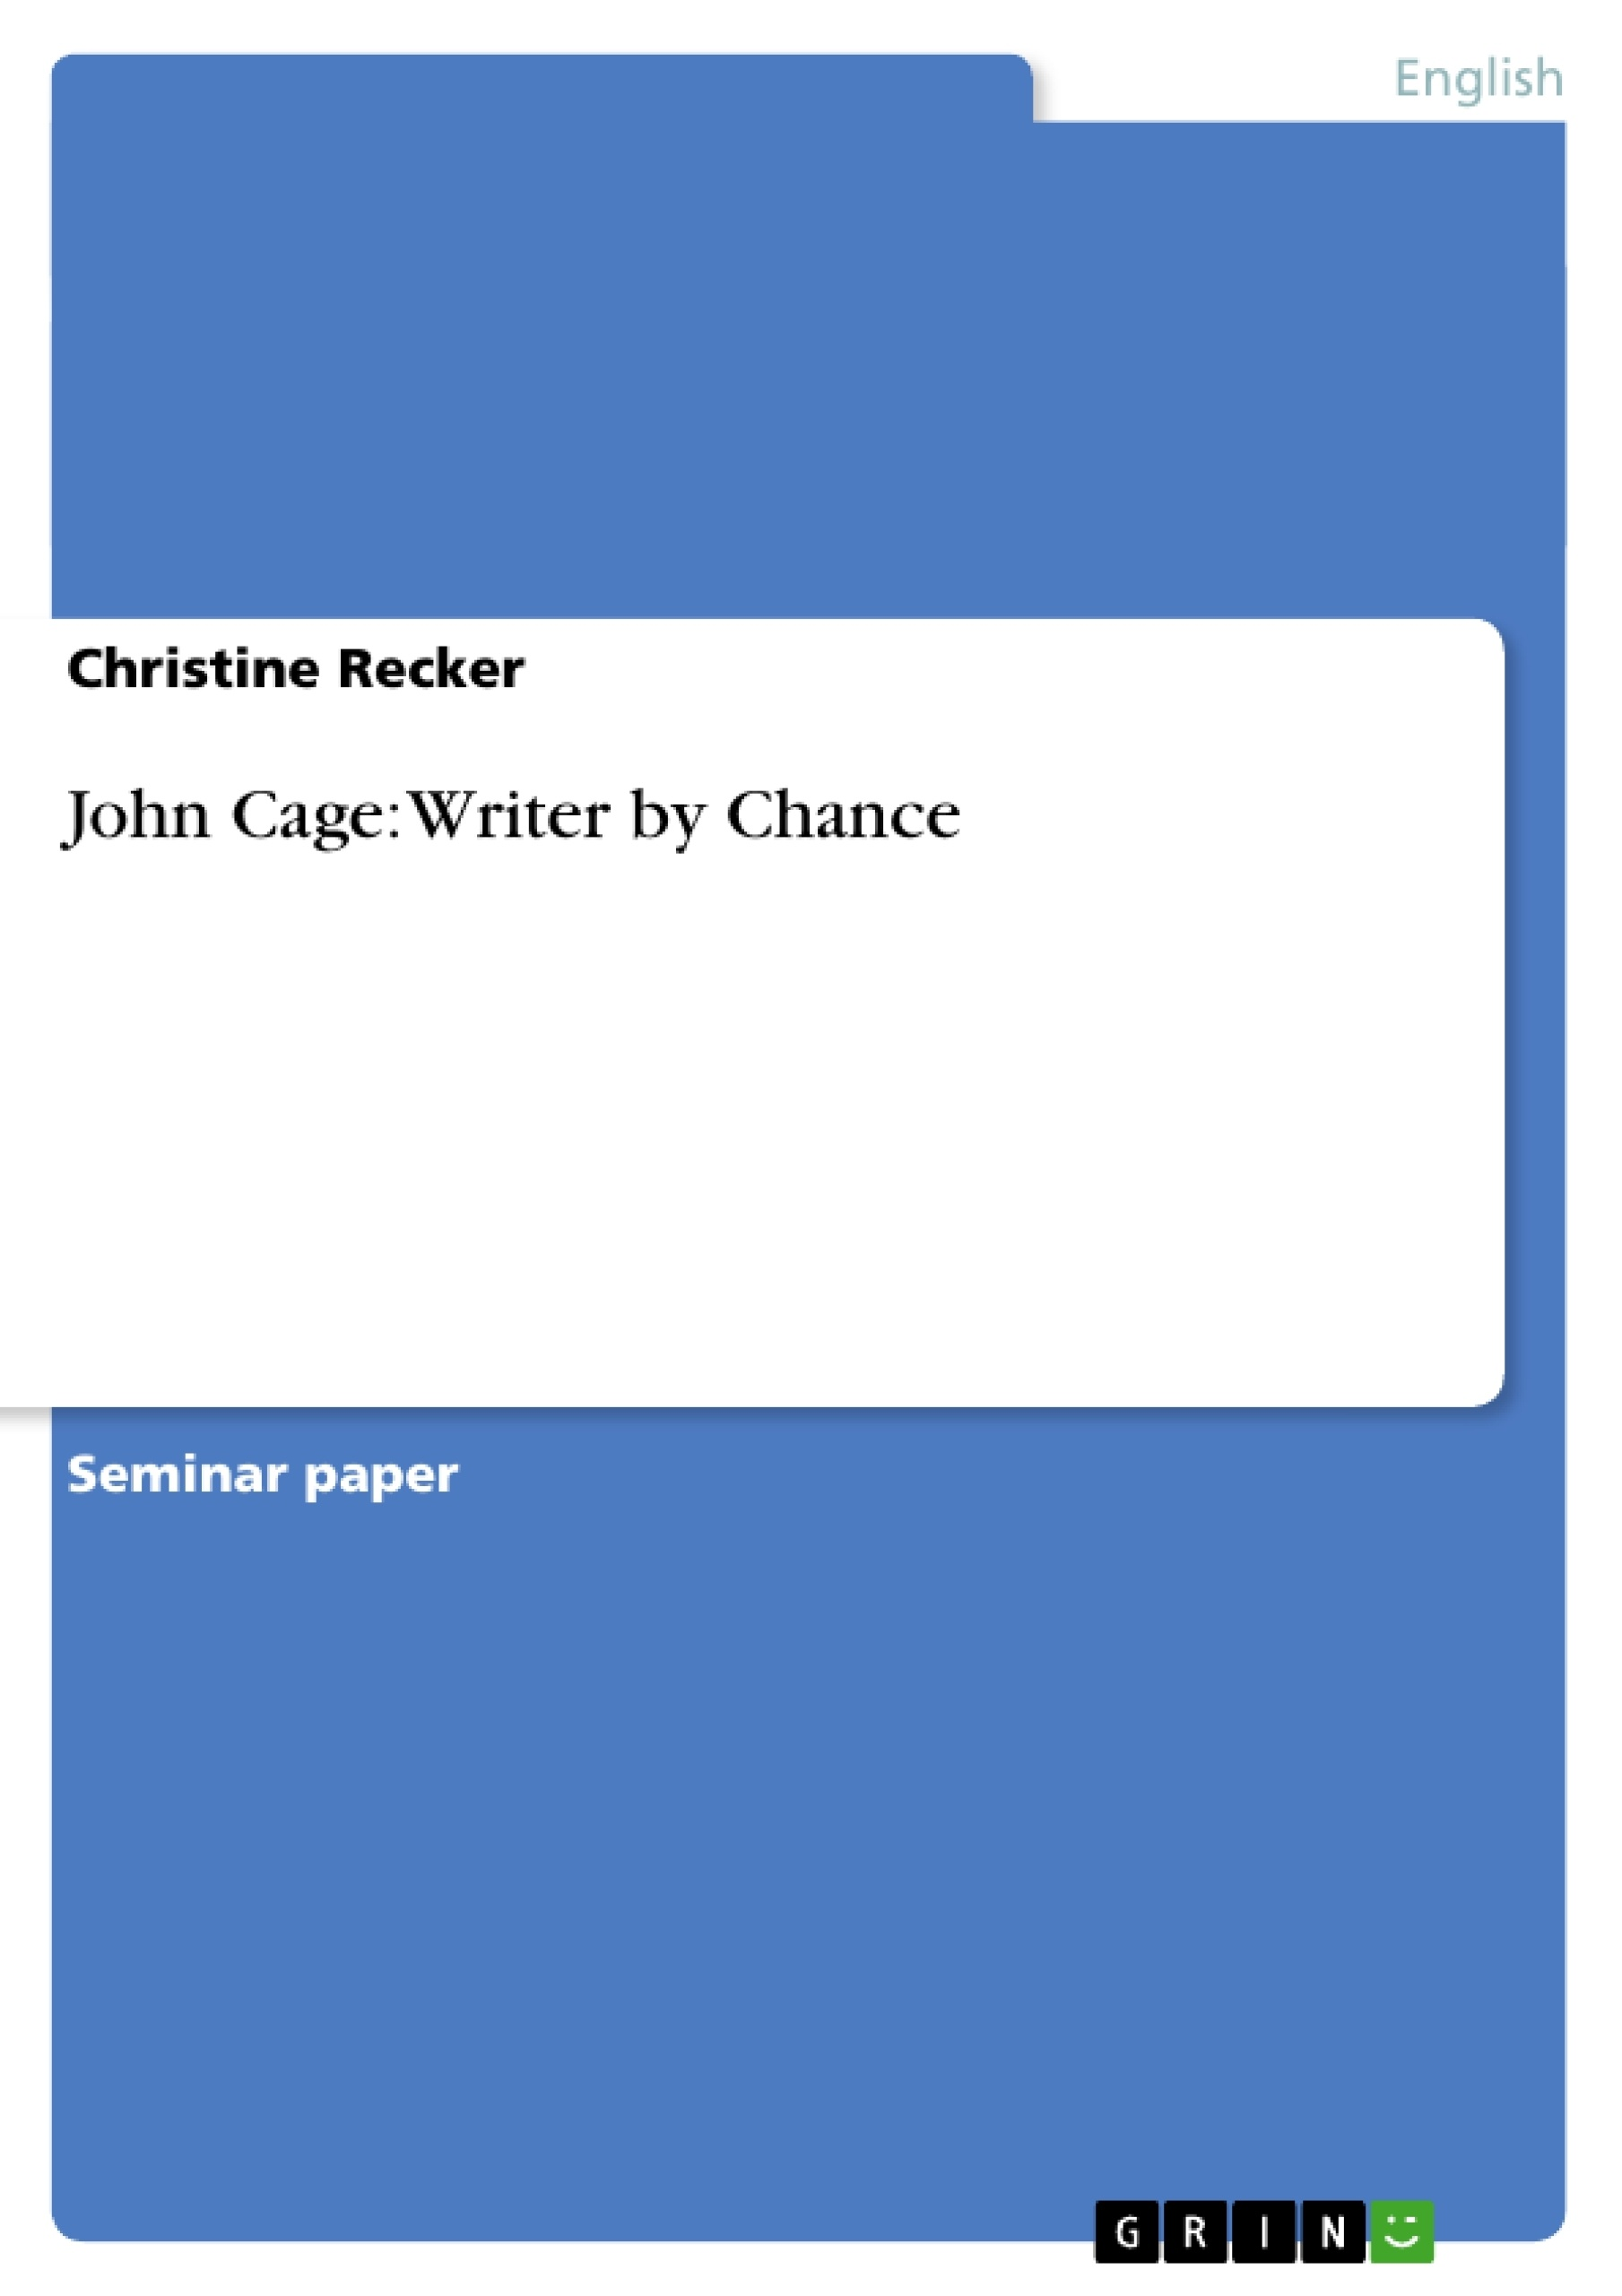 Title: John Cage: Writer by Chance